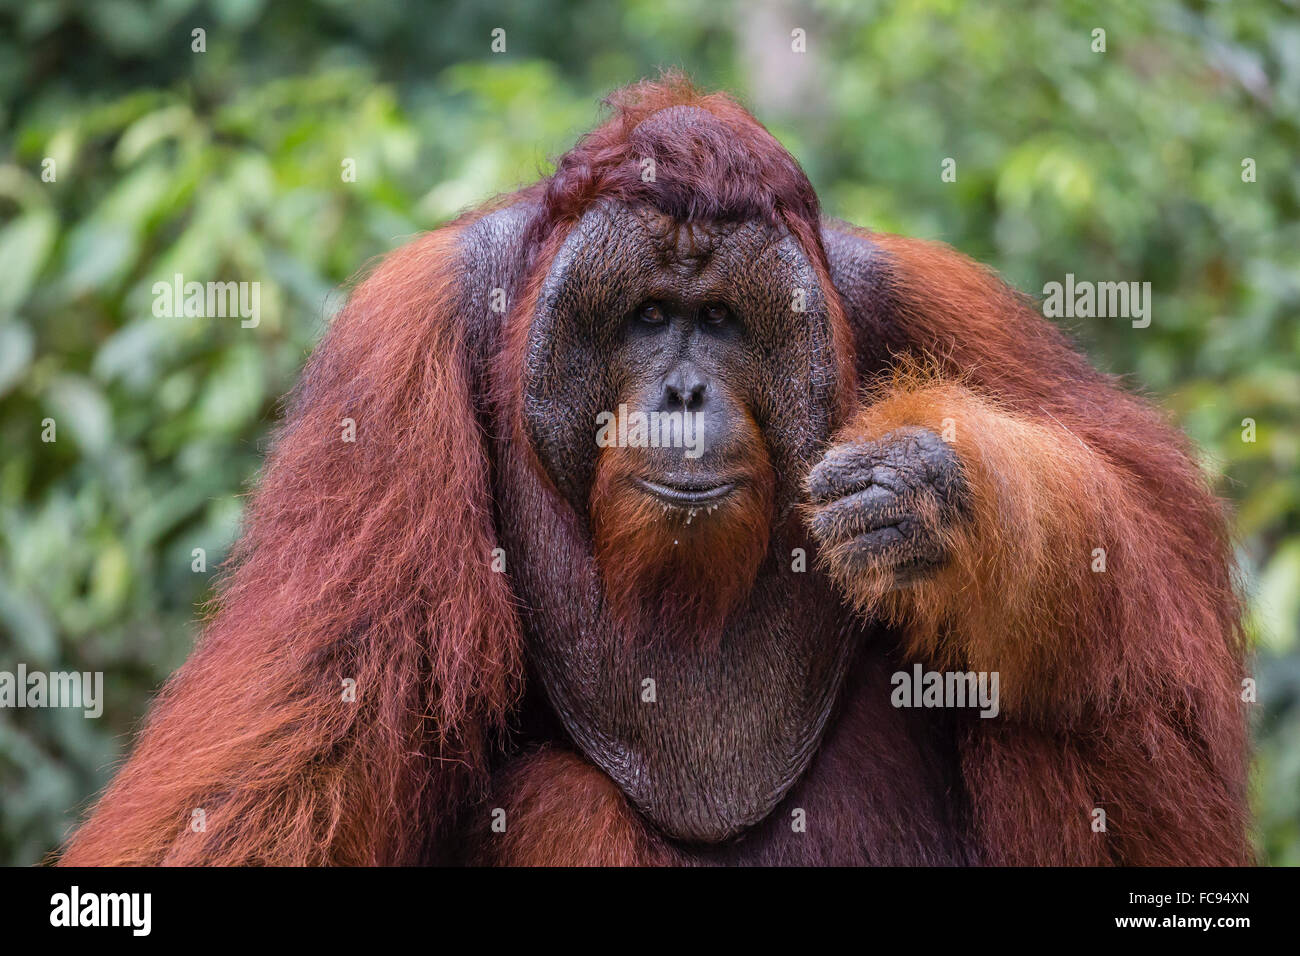 Reintroduced flanged male orangutan (Pongo pygmaeus), Camp Leakey, Tanjung Puting National Park, Borneo, Indonesia - Stock Image